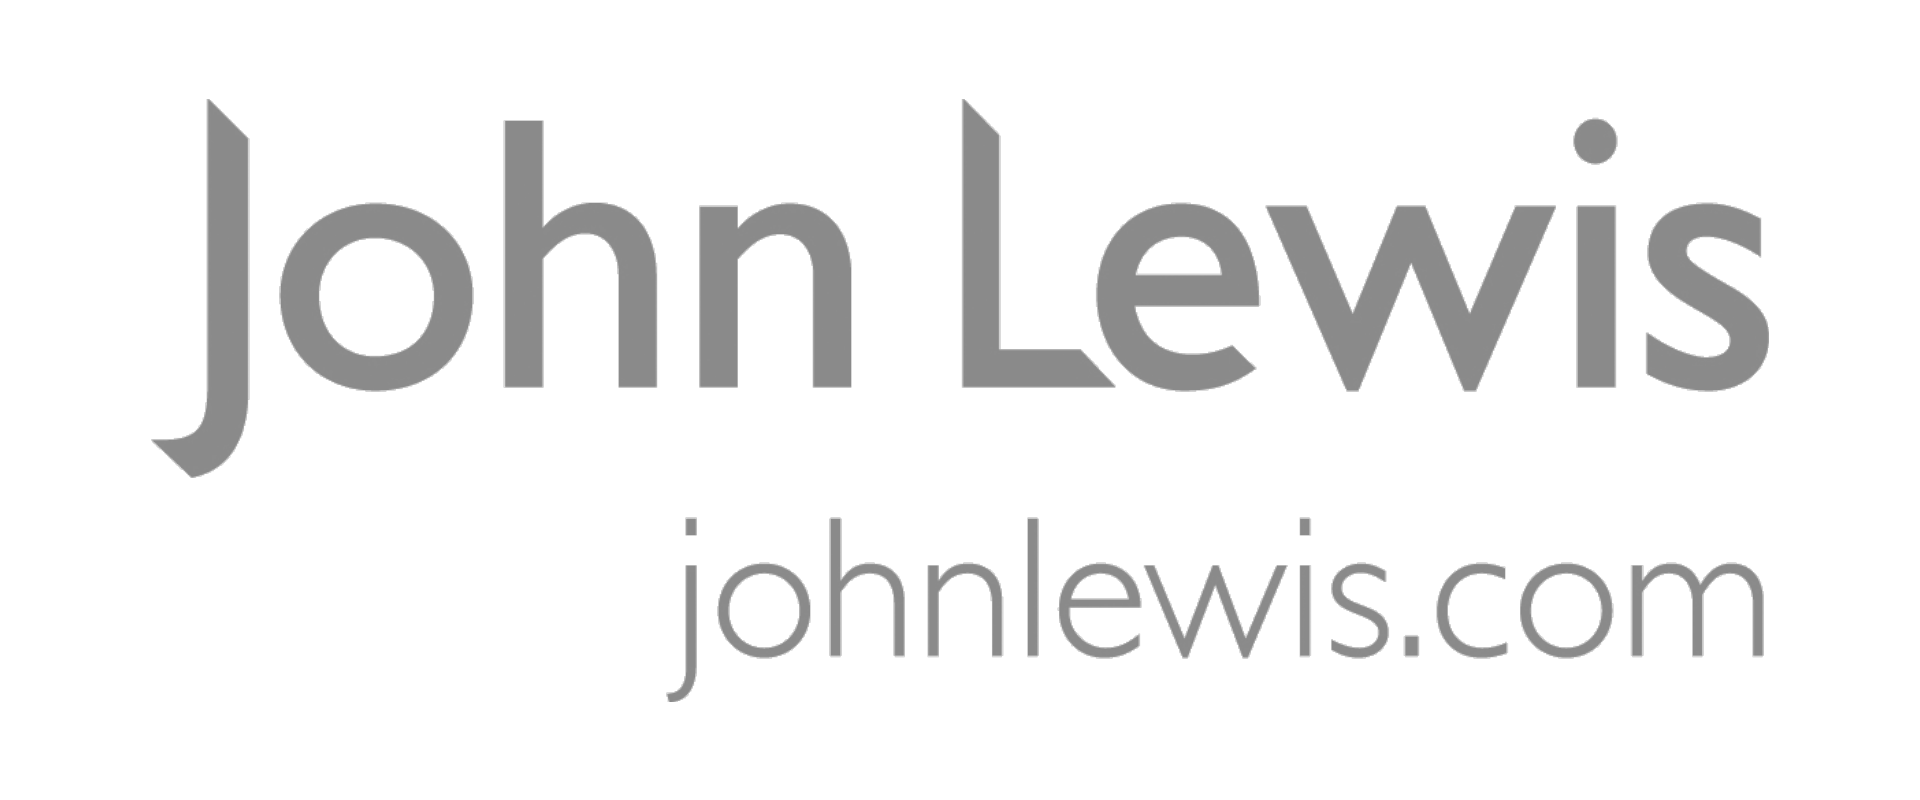 Studio 2 Media have produced for the John Lewis website